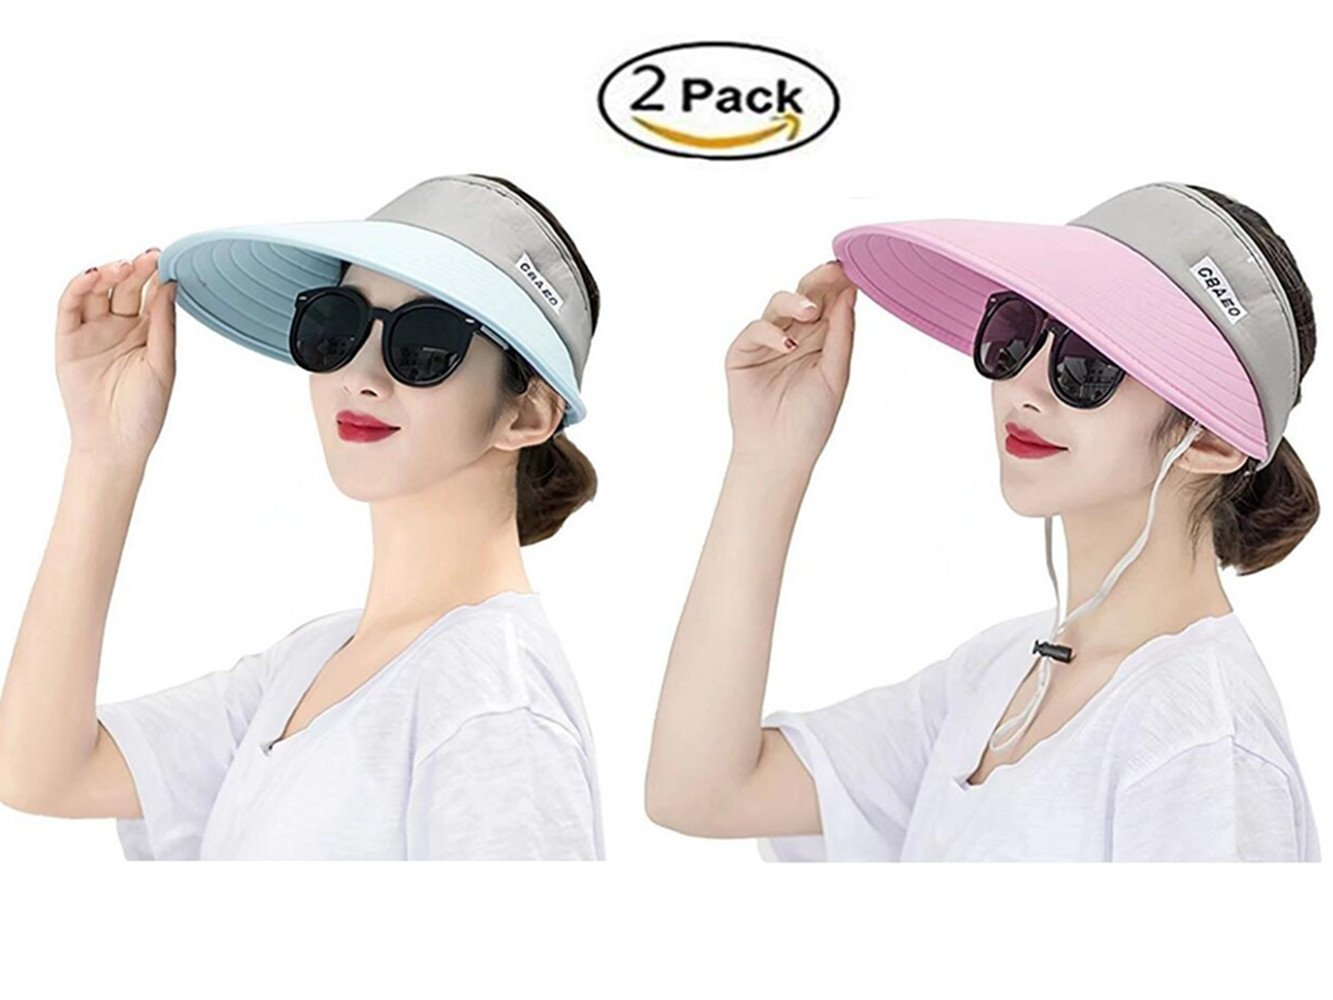 Jiuhexu Visor Hats Wide Brim Cap UV Protection Summer Sun Hats For Women